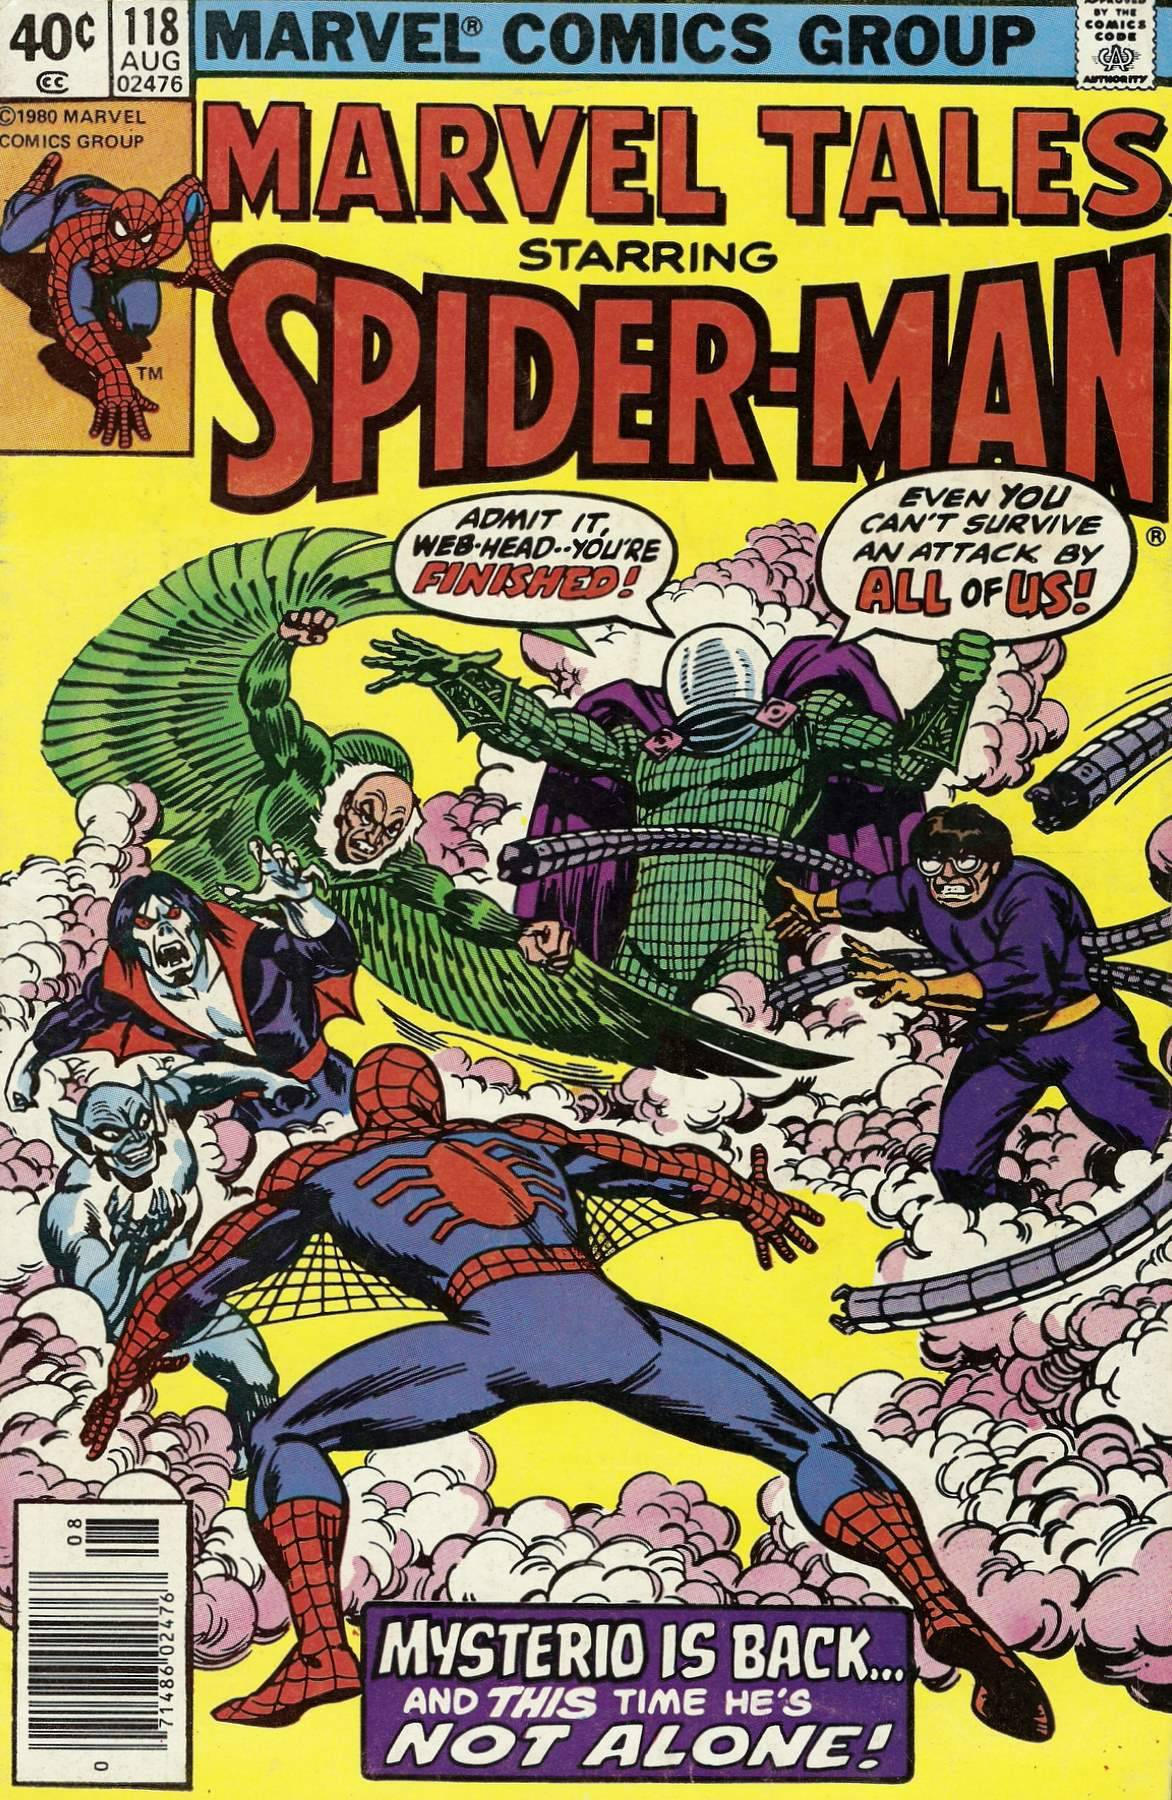 comicbookcovers:  Marvel Tales Starring Spider-Man #118, August 1980, cover by John Romita